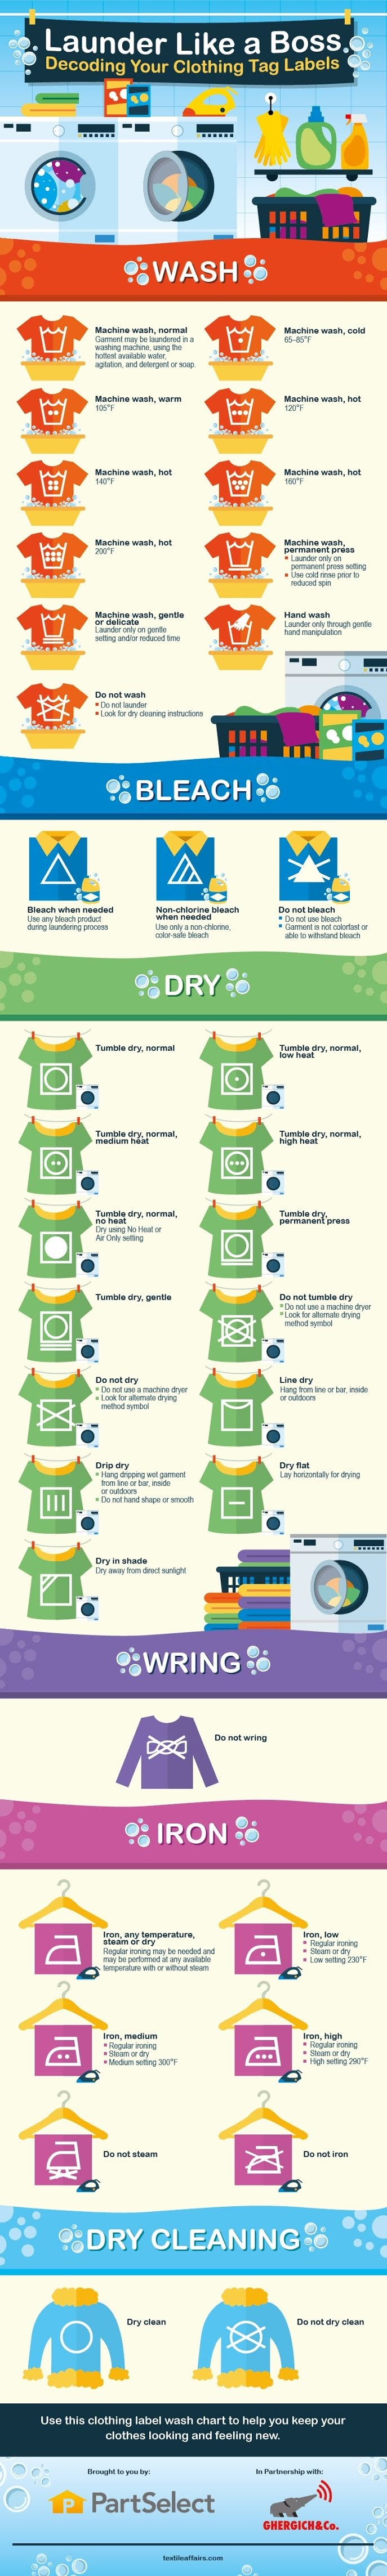 Laundry Hacks #infographic